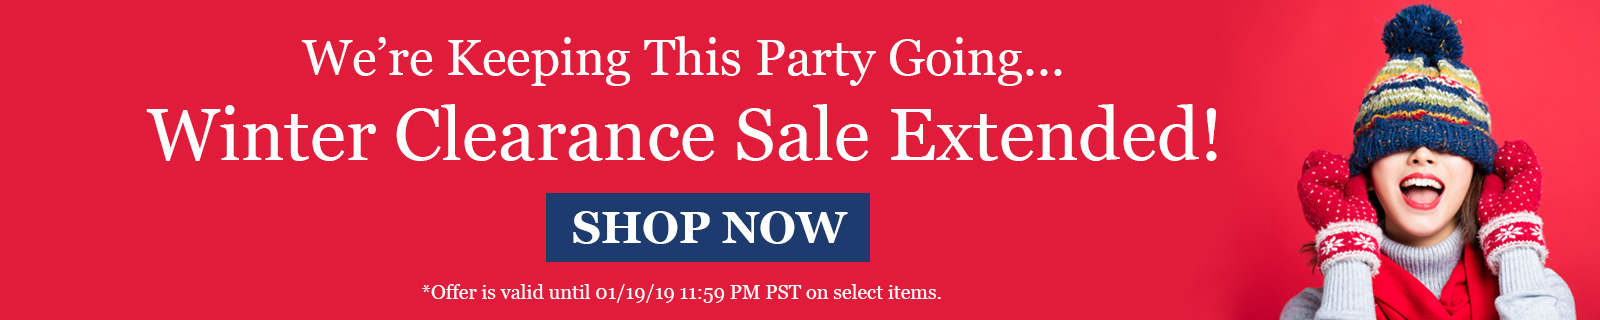 We're Keeping This Party Going... Winter Clearance Sale Extended! SHOP NOW